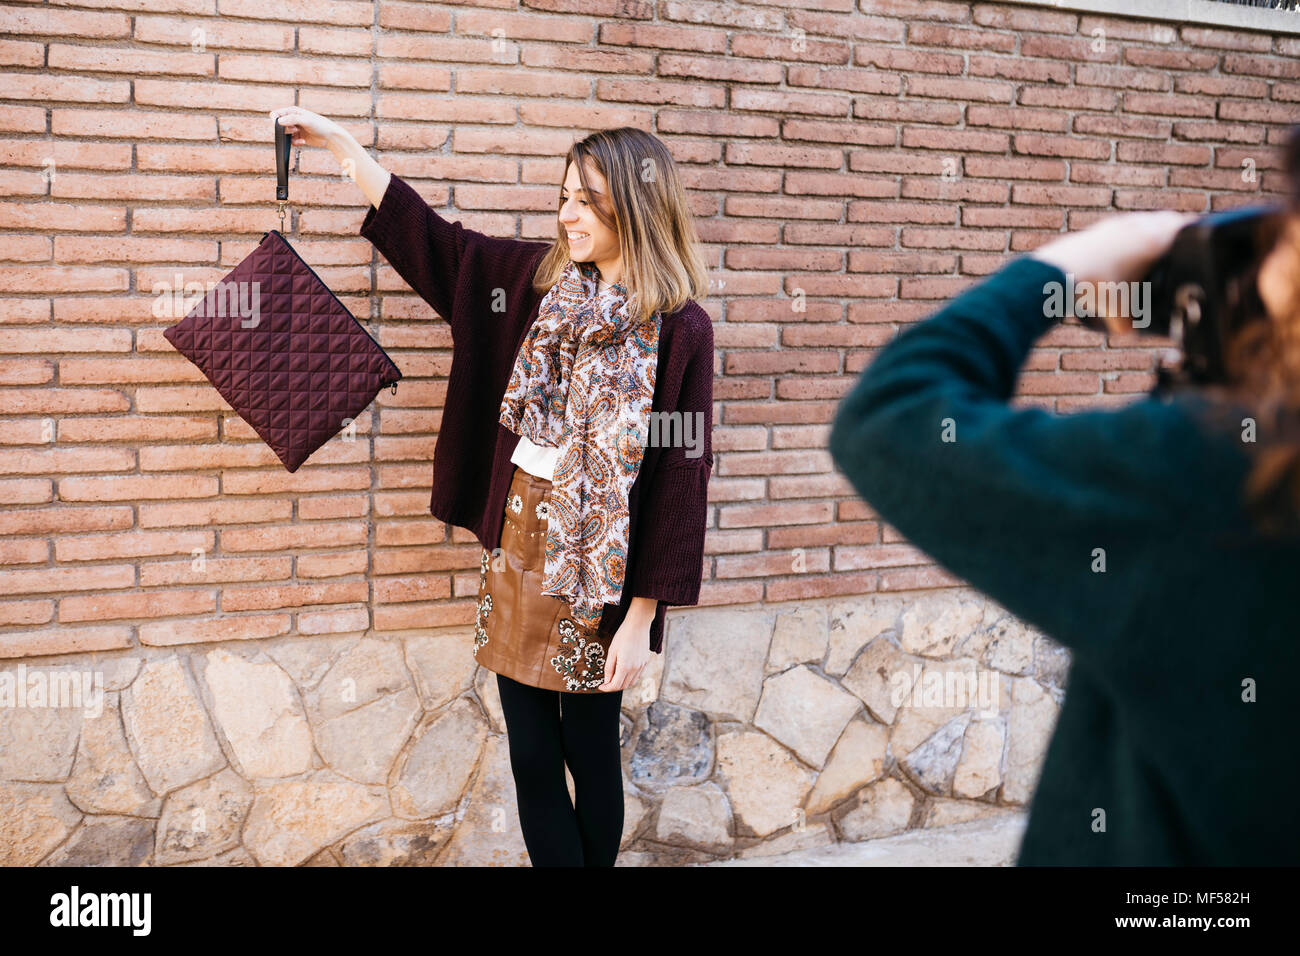 Fashion designers doing a photo shoot of their new products - Stock Image